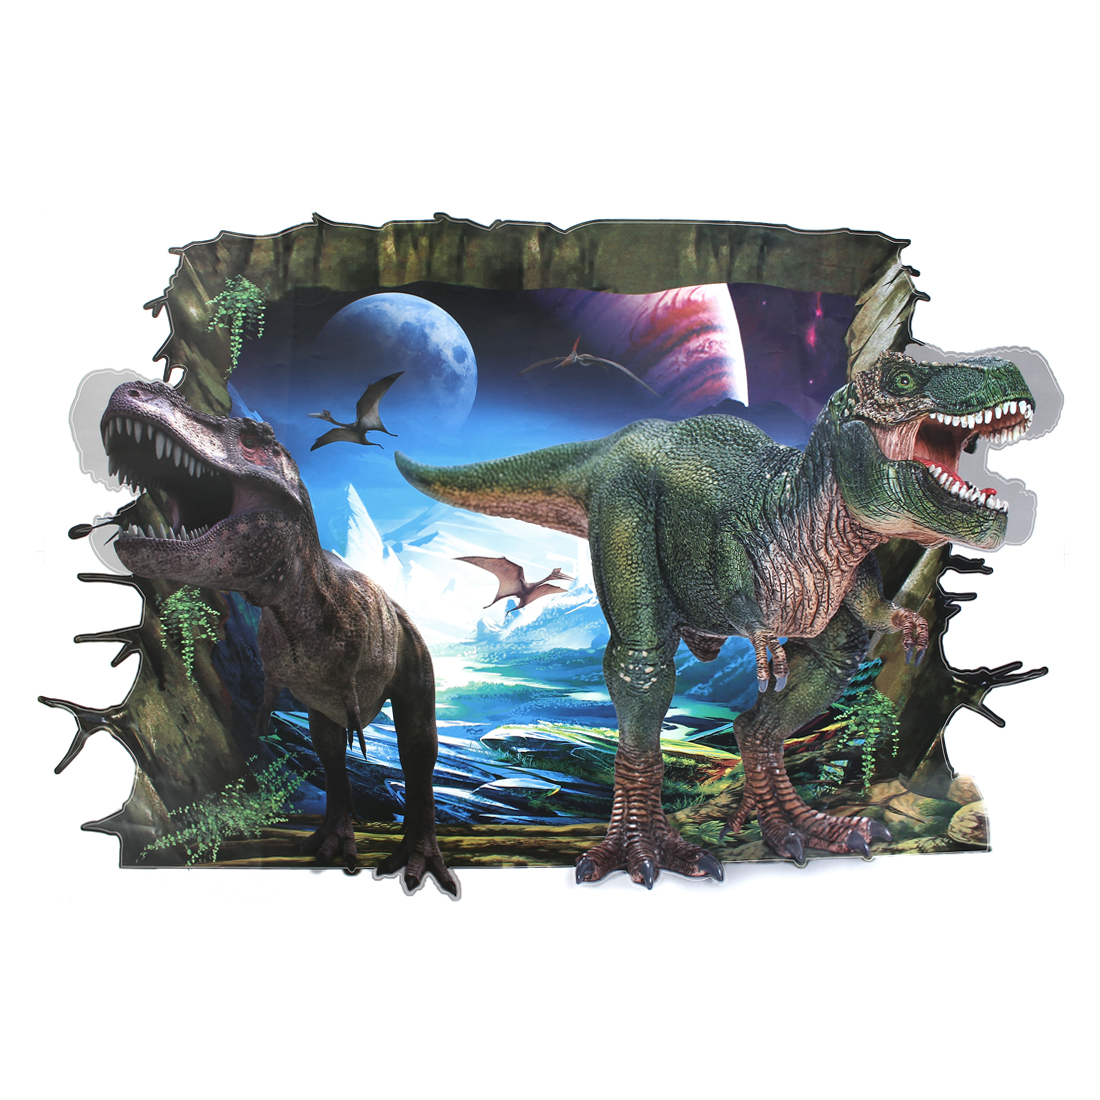 Unique Bargains Home Nursery Background Wall Decor 3D Effect Dinosaur Pattern Wall Sticker Decal